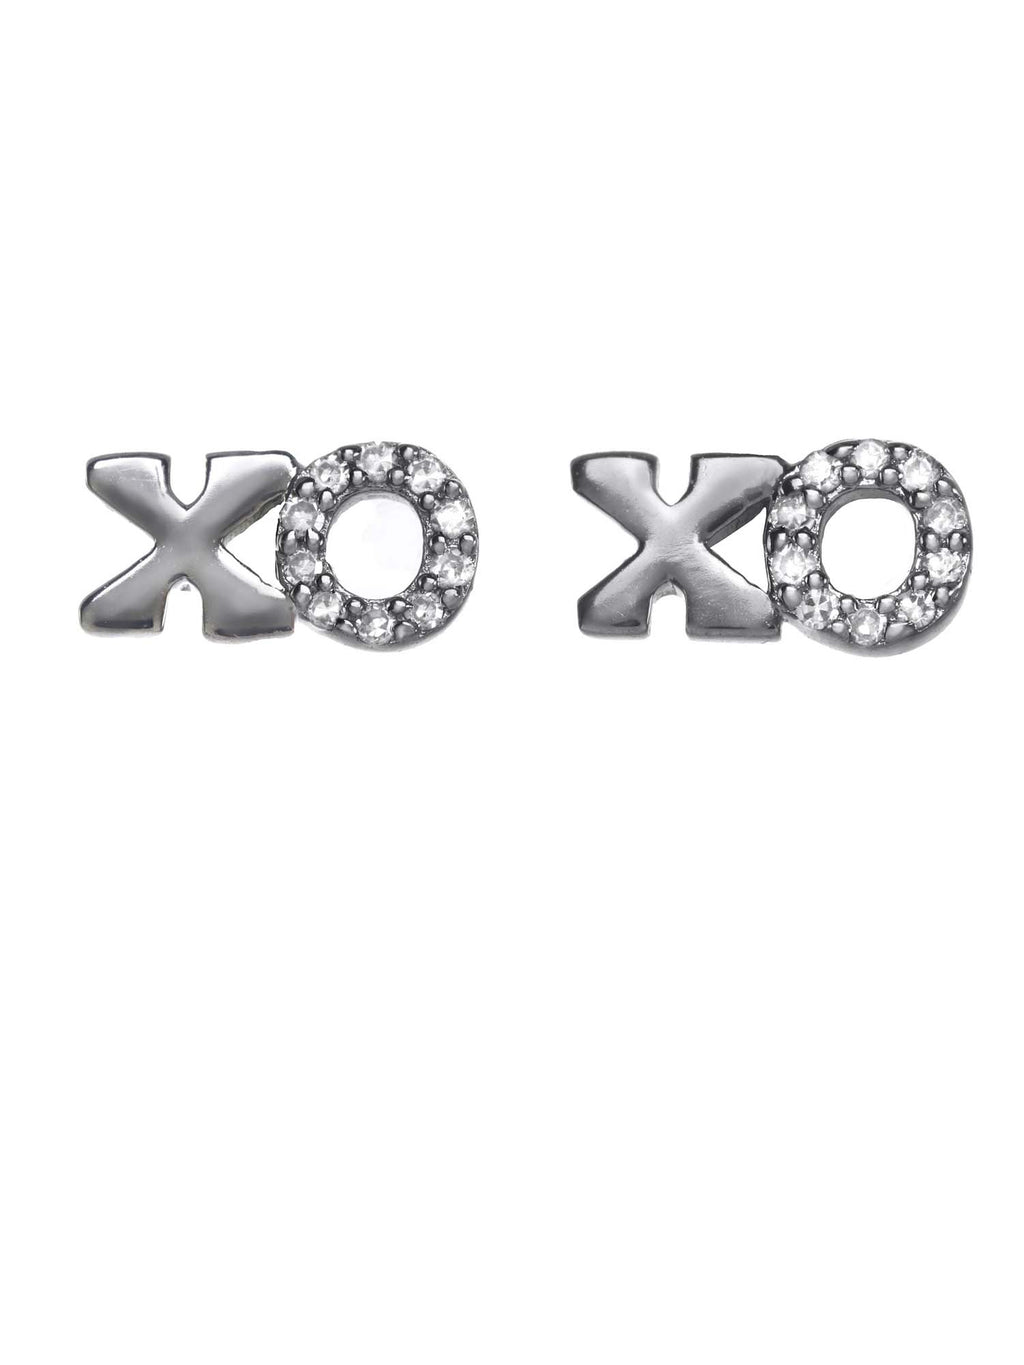 Margo Morrison Small XO Diamond Earrings